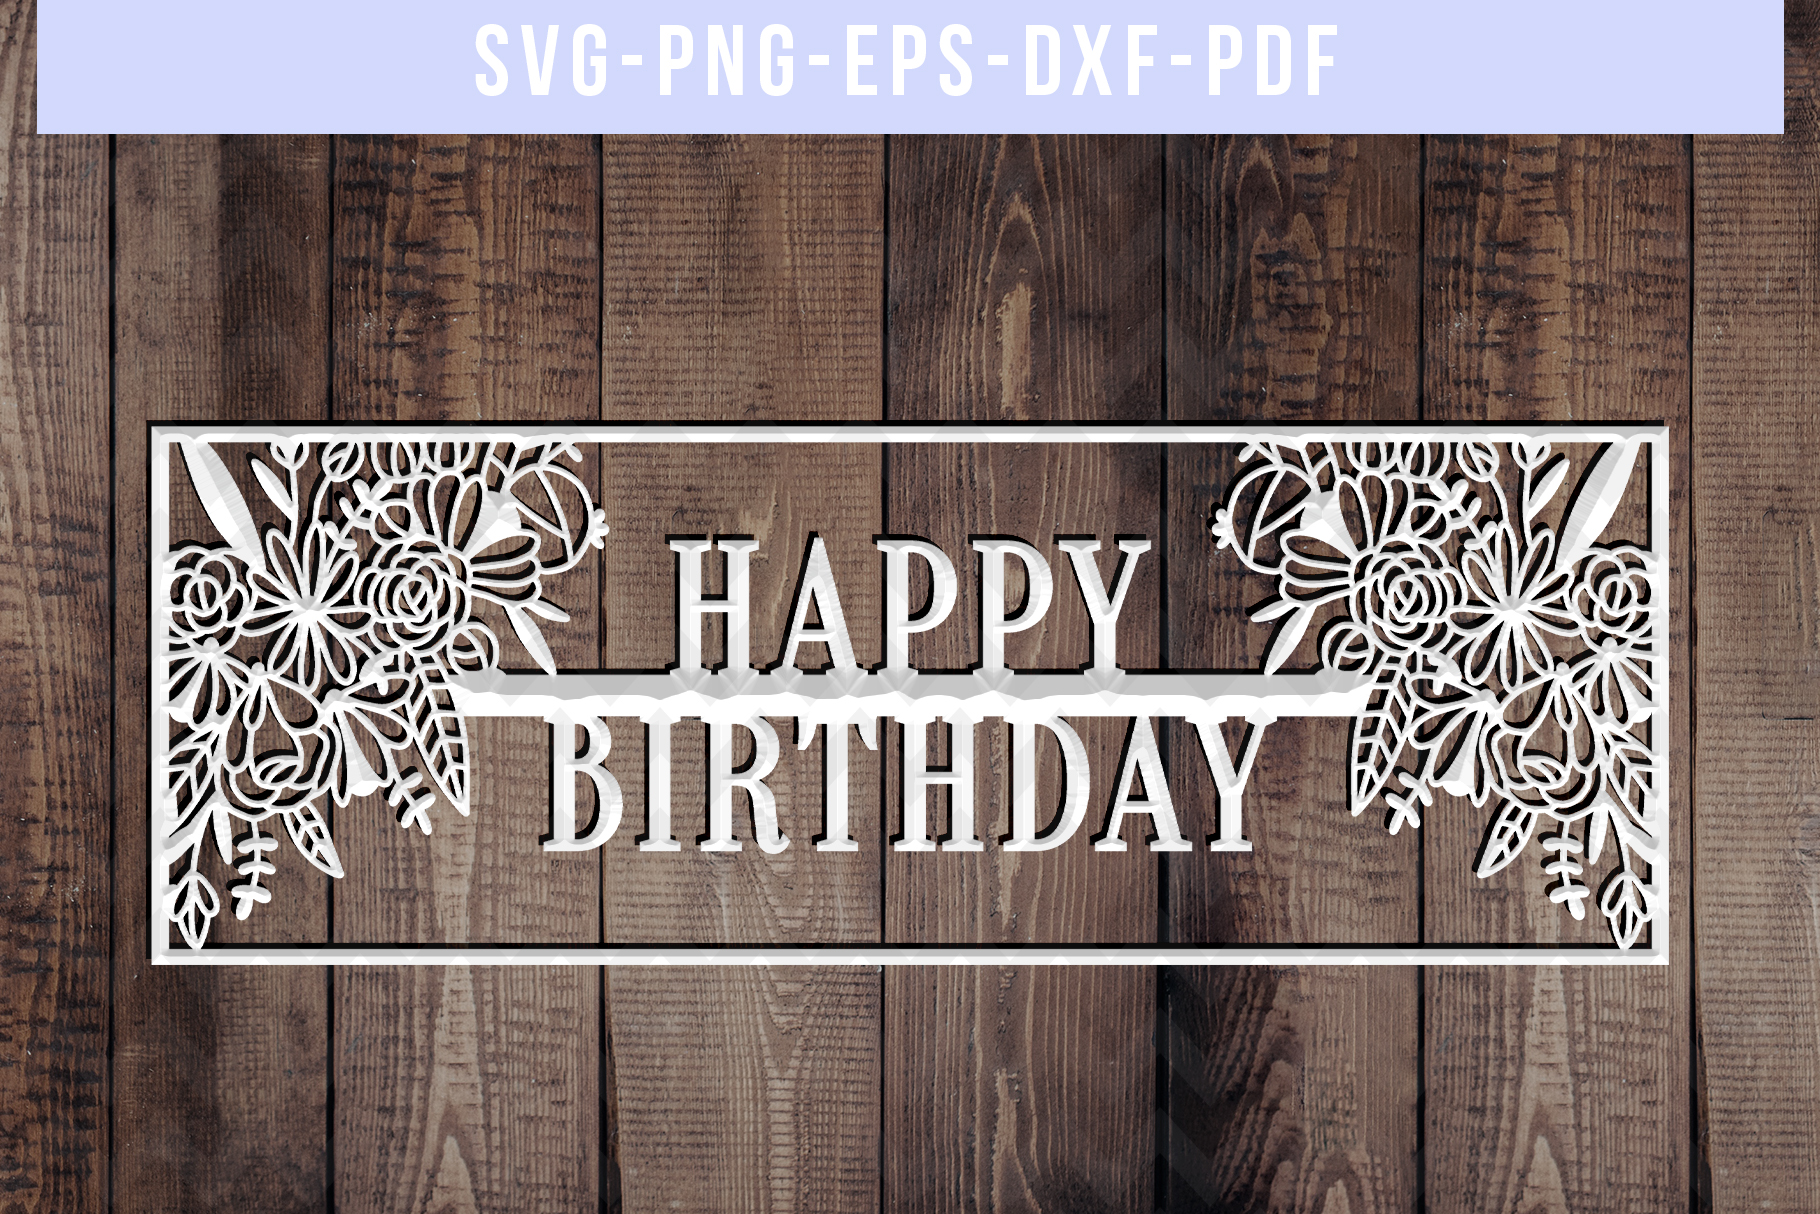 Happy Birthday Papercut Template, Birthday Frame SVG PDF DXF example image 3